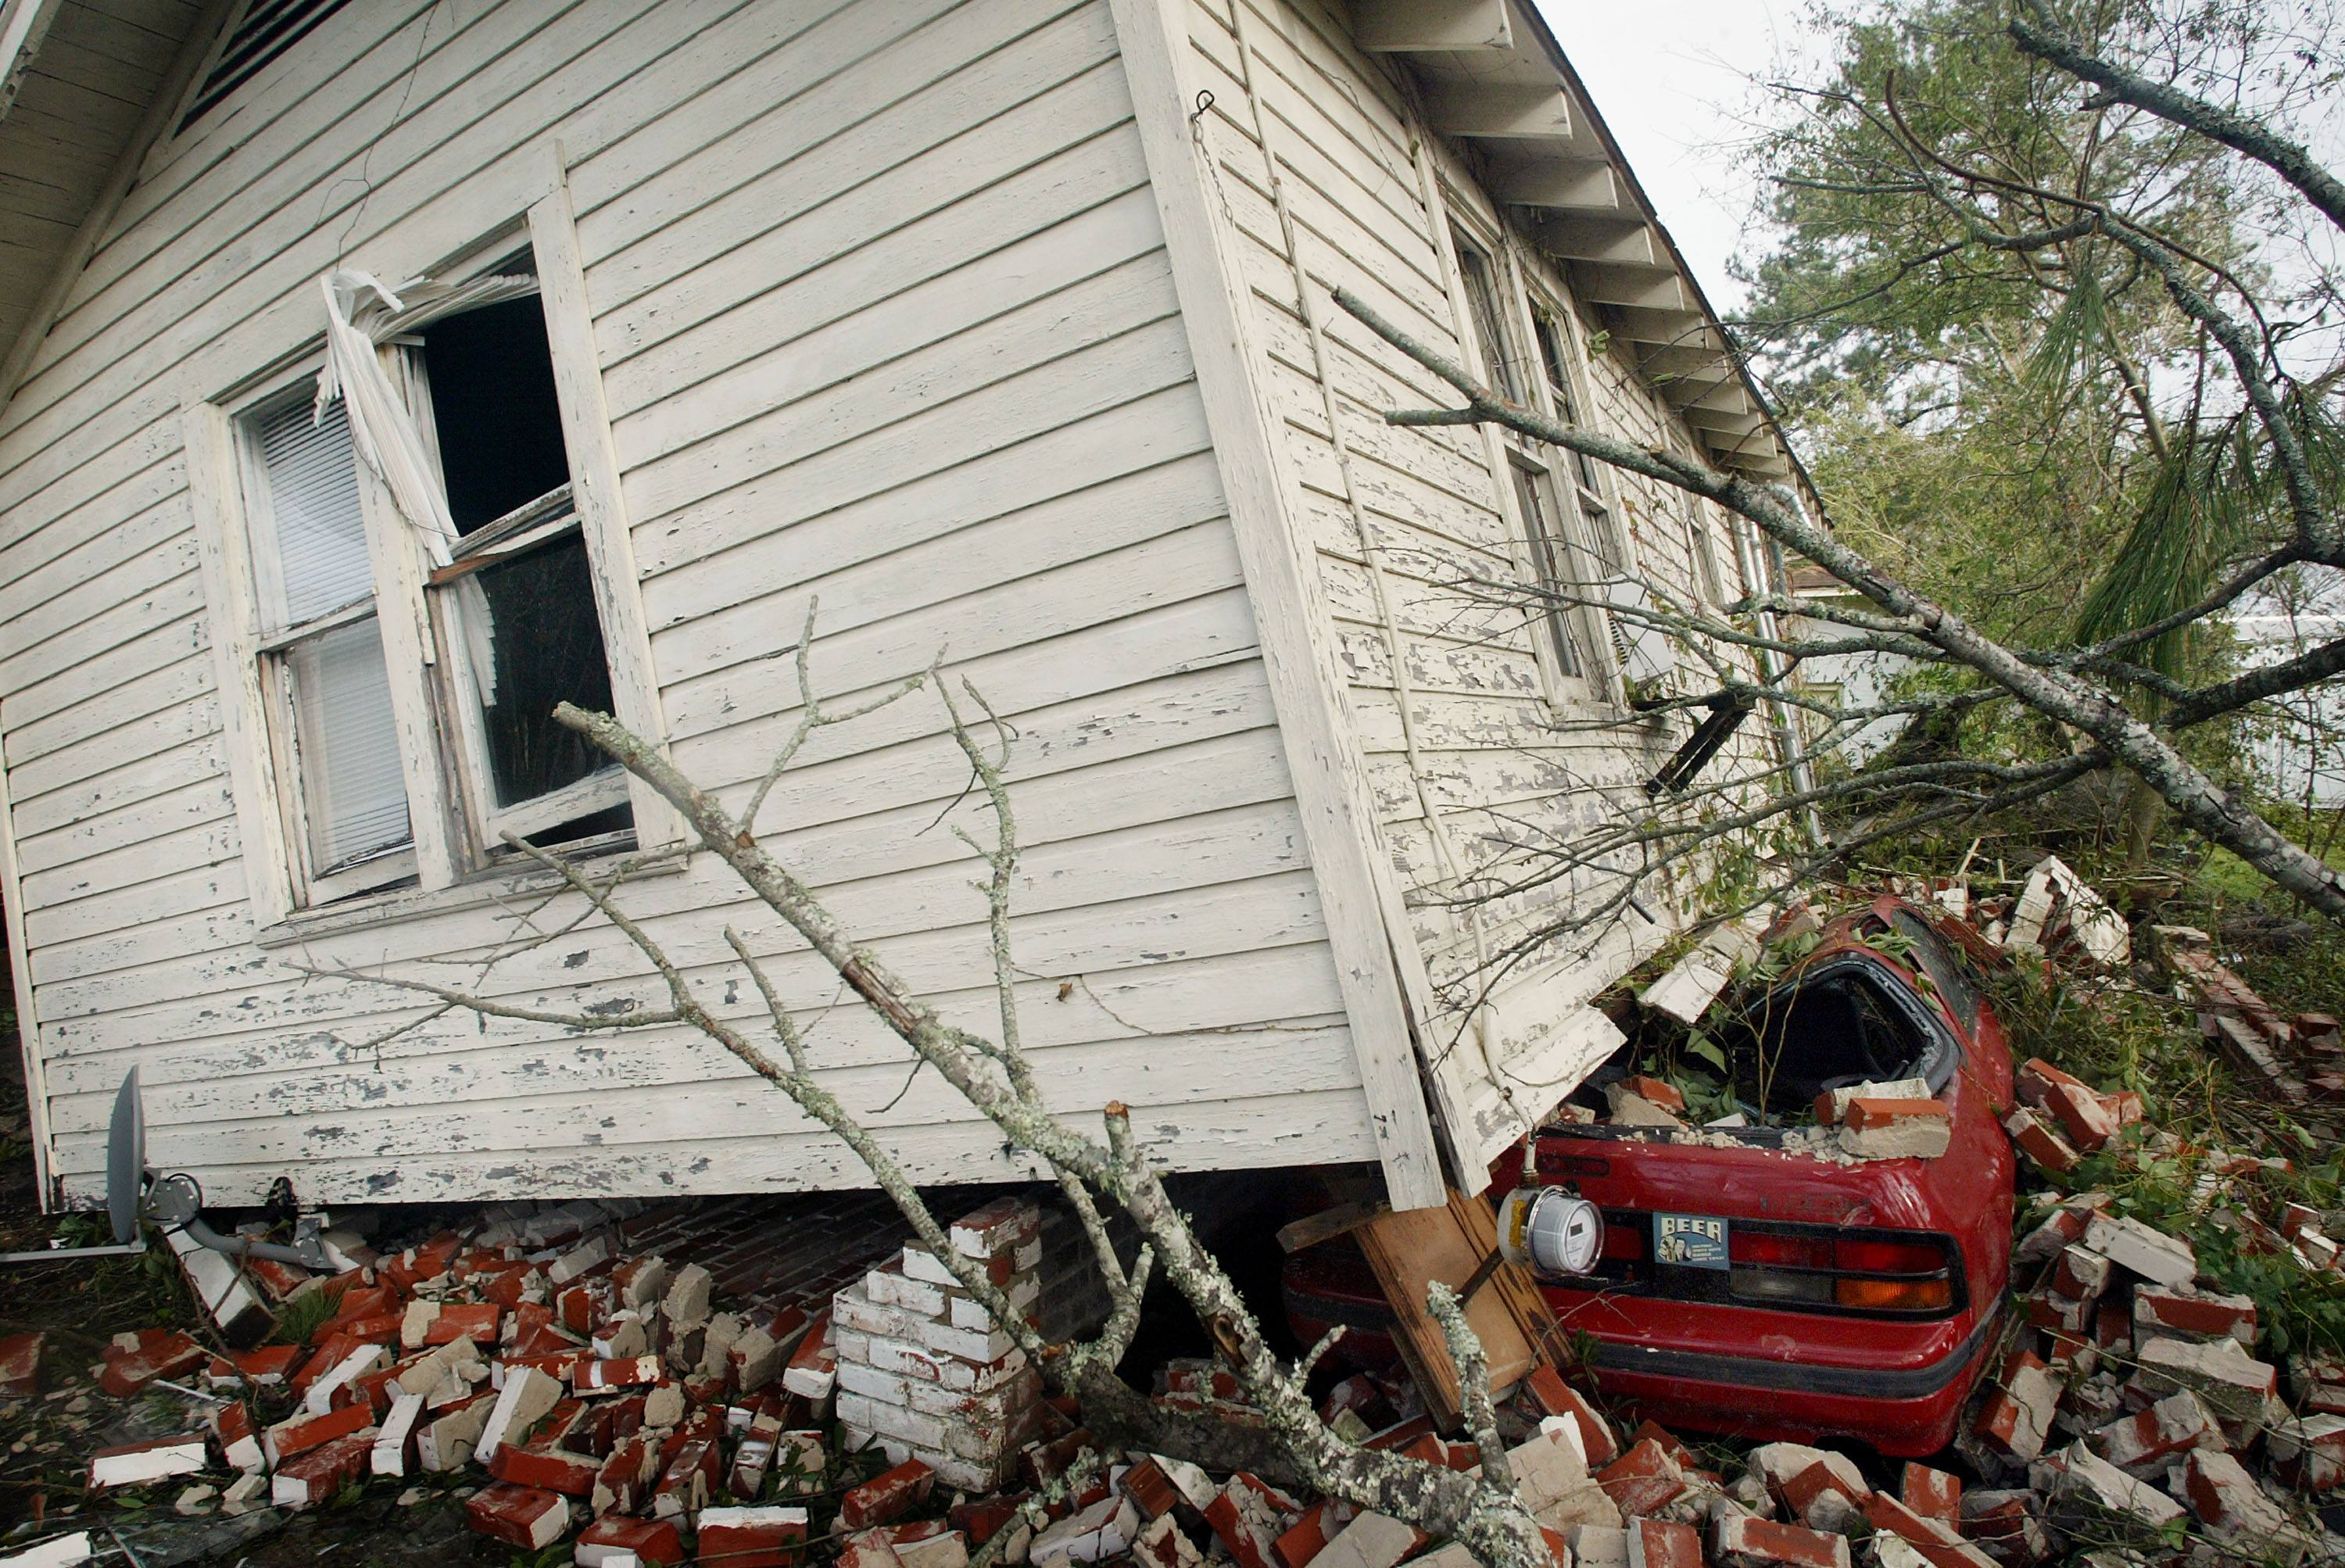 A house rests on top of a car in Lake Charles, La., after Hurricane Rita in 2005.